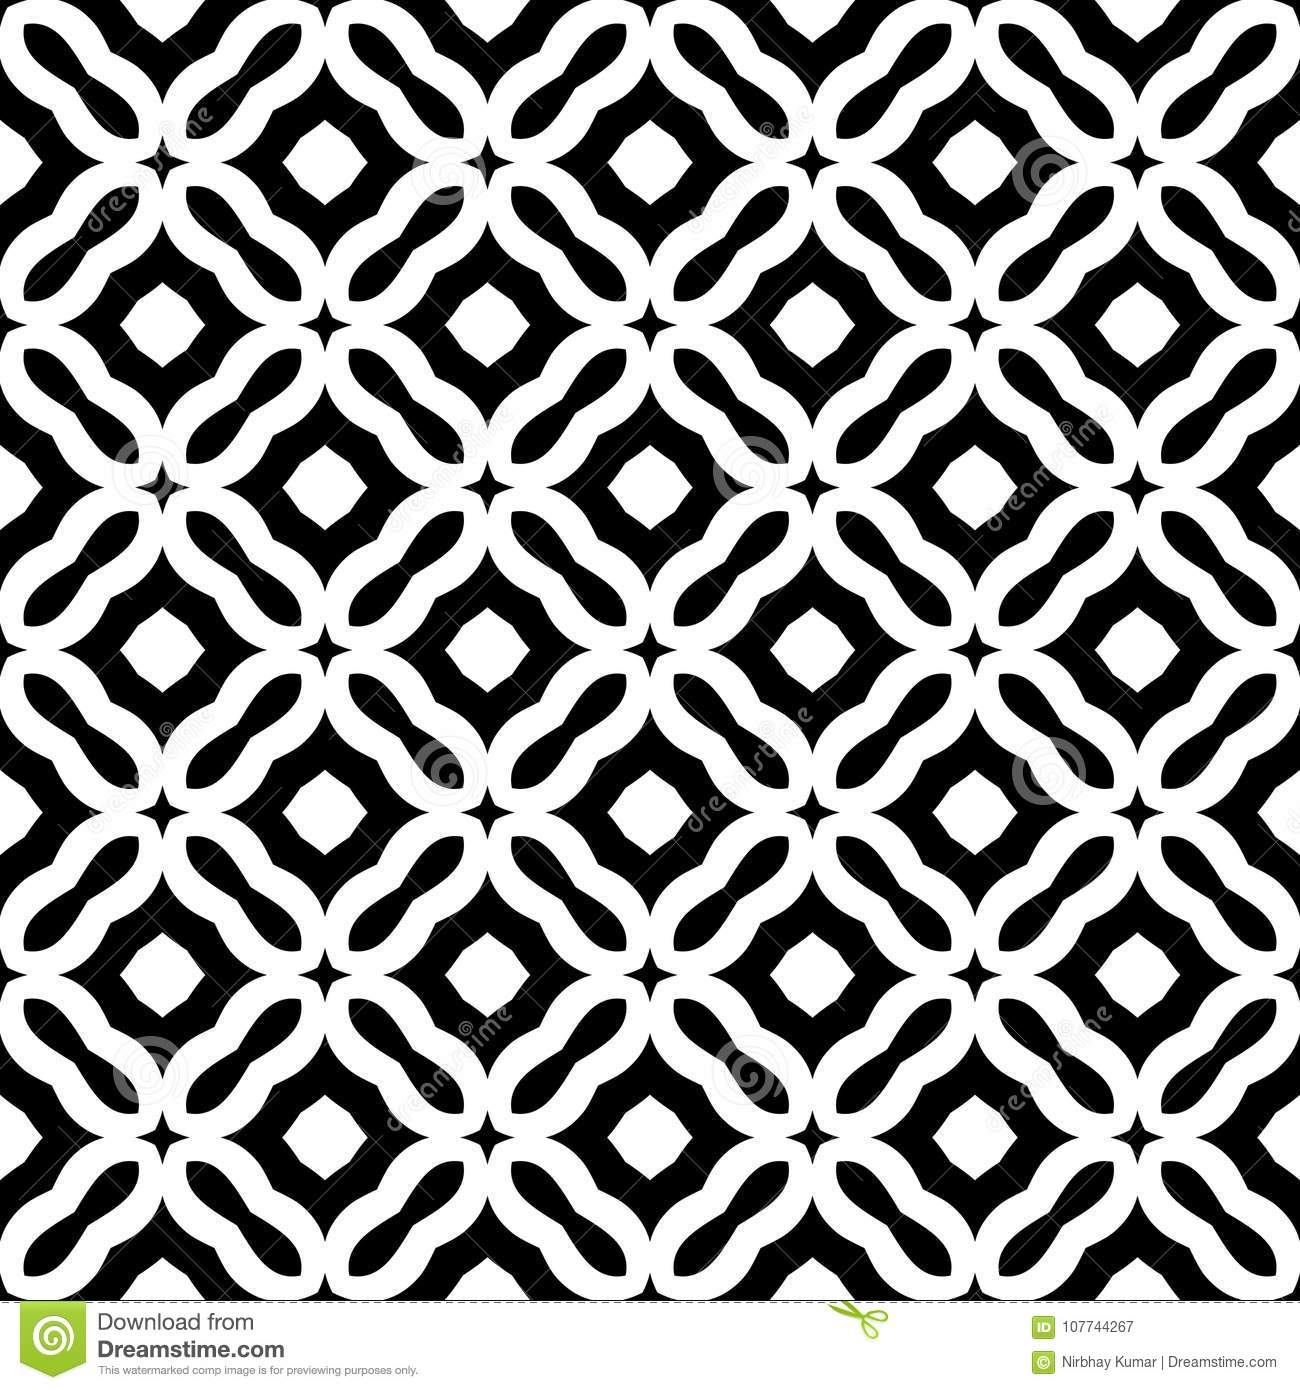 Great Wallpaper Home Screen Black And White - pattern-website-background-wallpaper-screen-sever-book-cover-printing-laser-cutting-designs-vector-black-white-107744267  Collection_182652.jpg